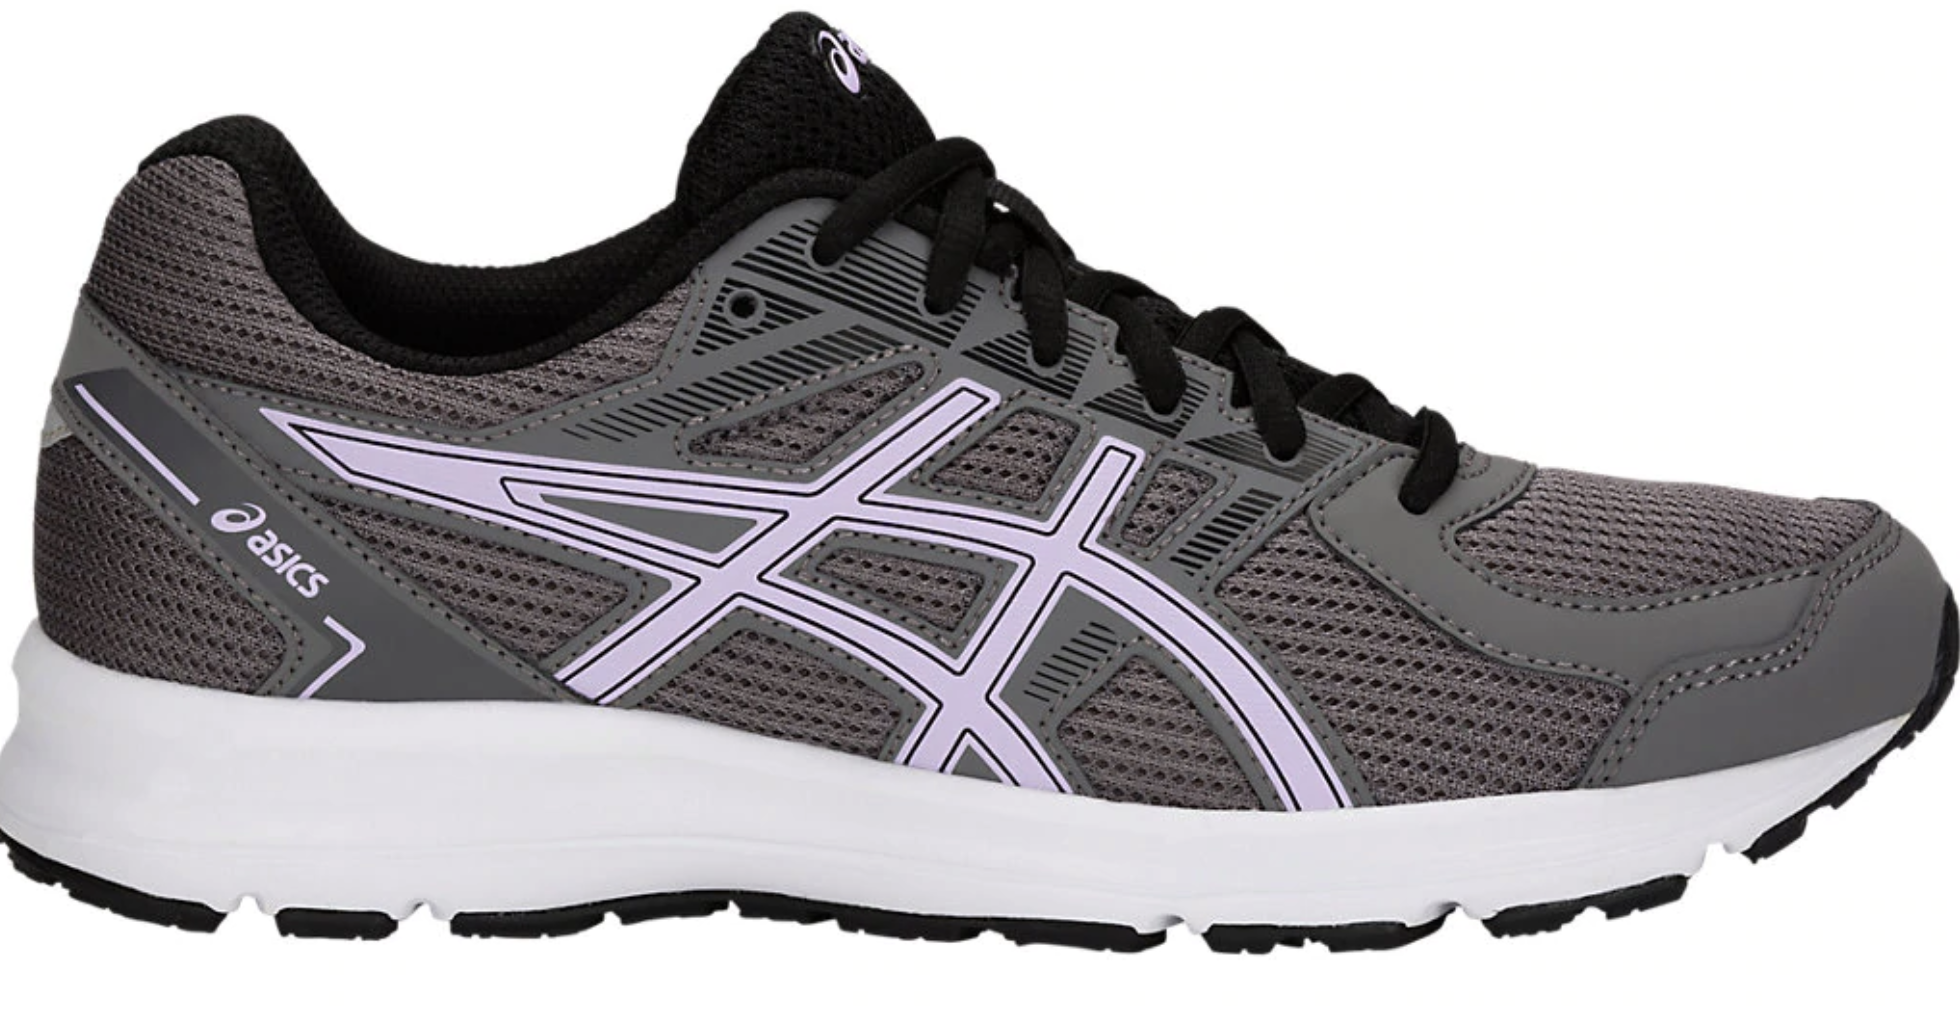 789e205dbebb ASICS Men s GEL-Sonoma 3 Running Shoes  29.99 each (regularly  80) Use the  code PICKUPTEN (10% off) Shipping is free. Final Cost  26.99 total shipped!